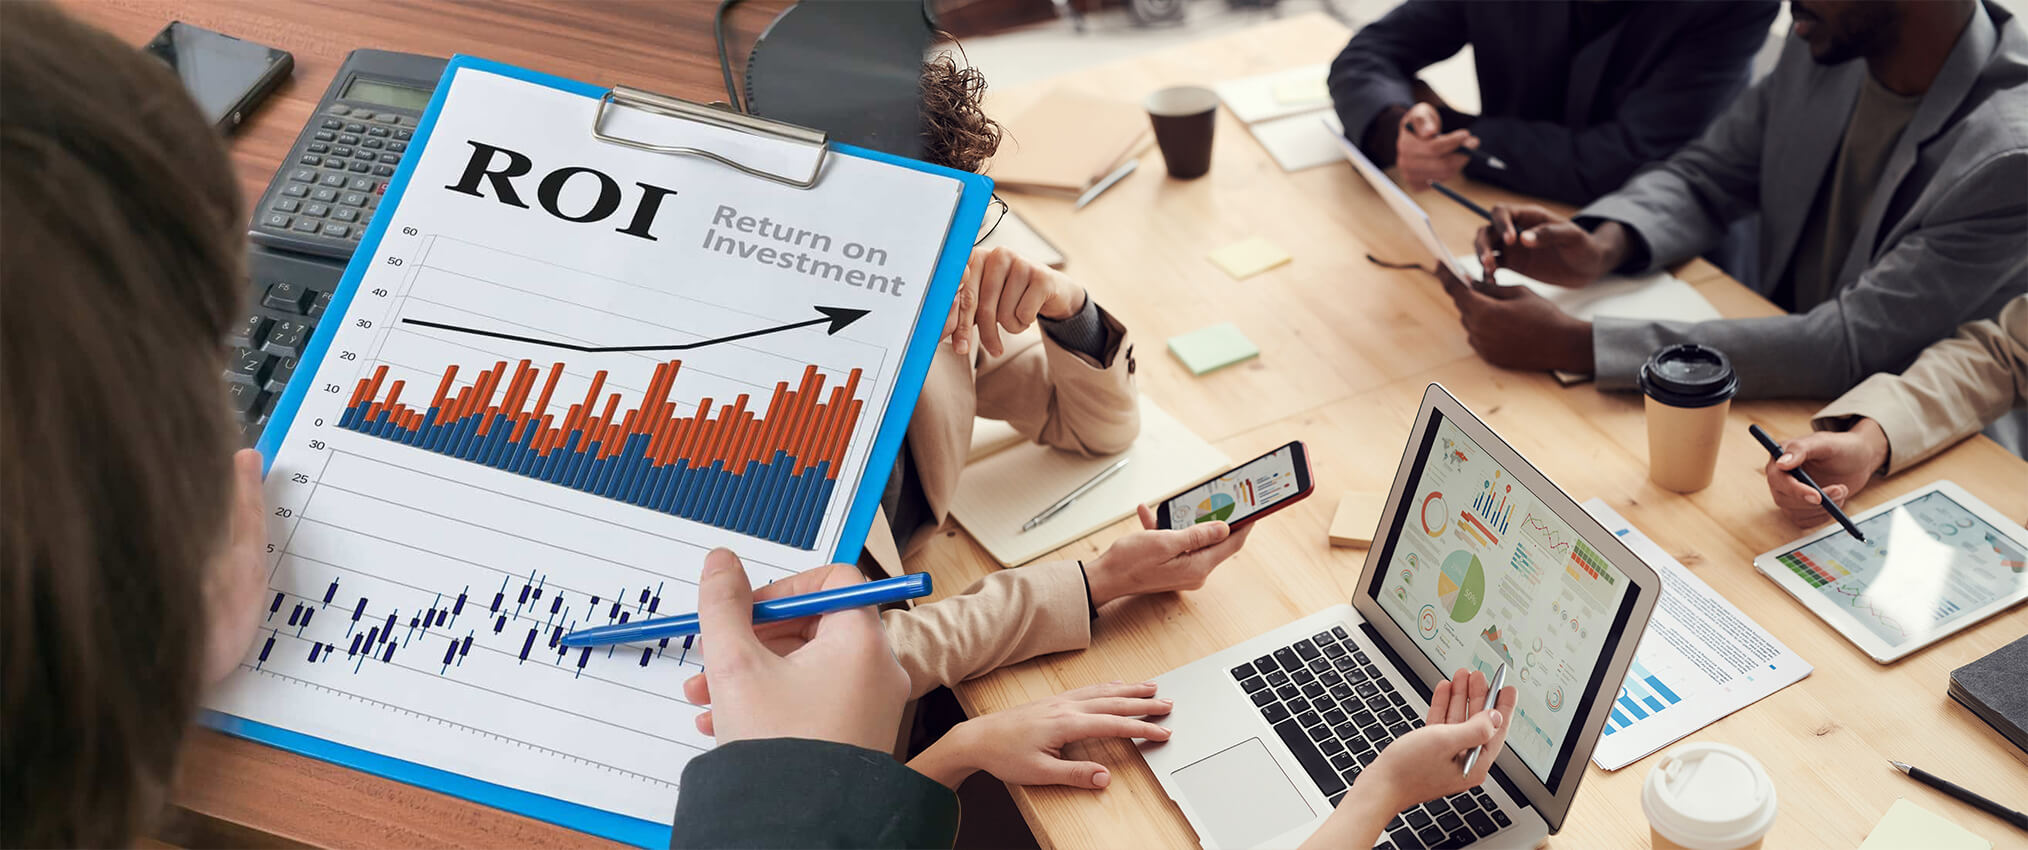 How to achieve better ROI through SEO Marketing for Small businesses?